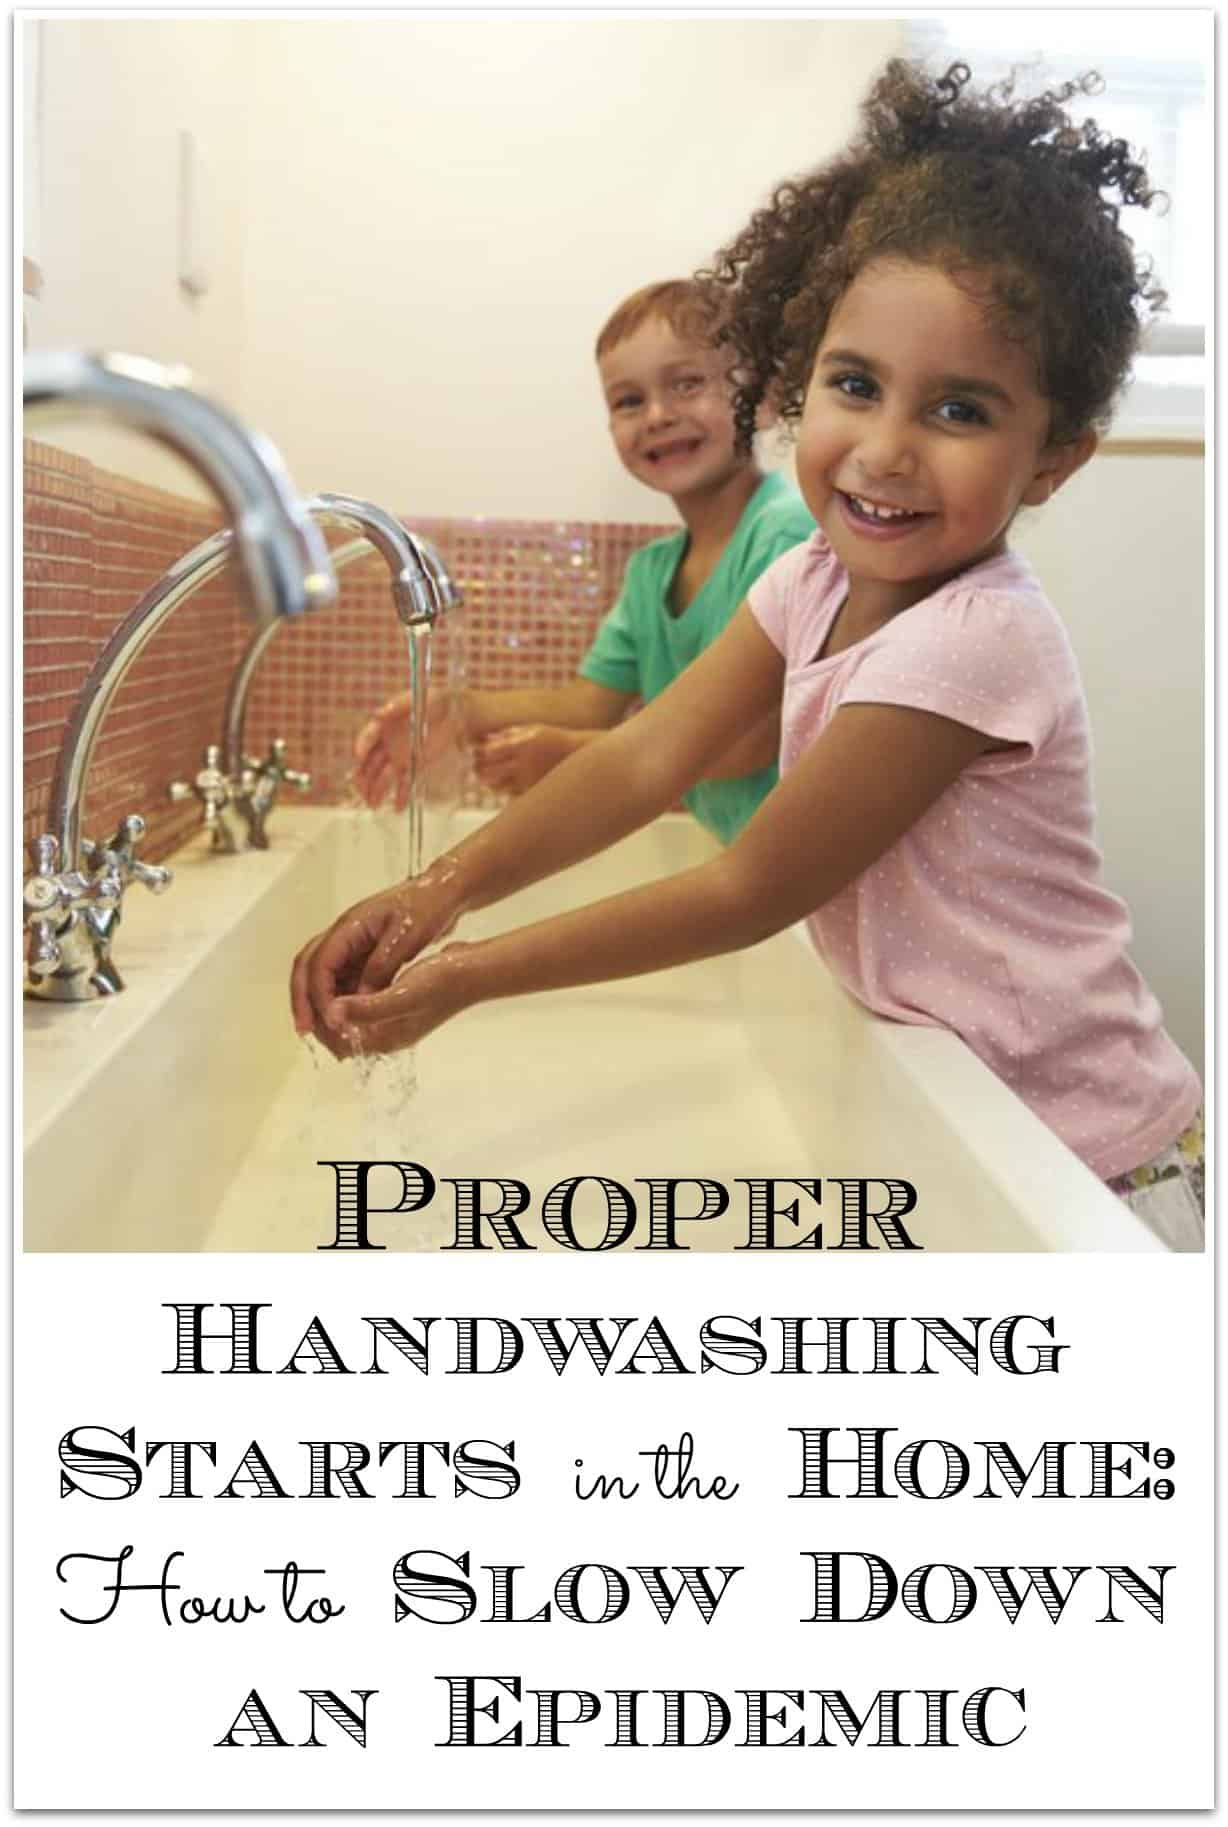 Good Handwashing Starts in the Home: How to Slow Down an Epidemic. children washing